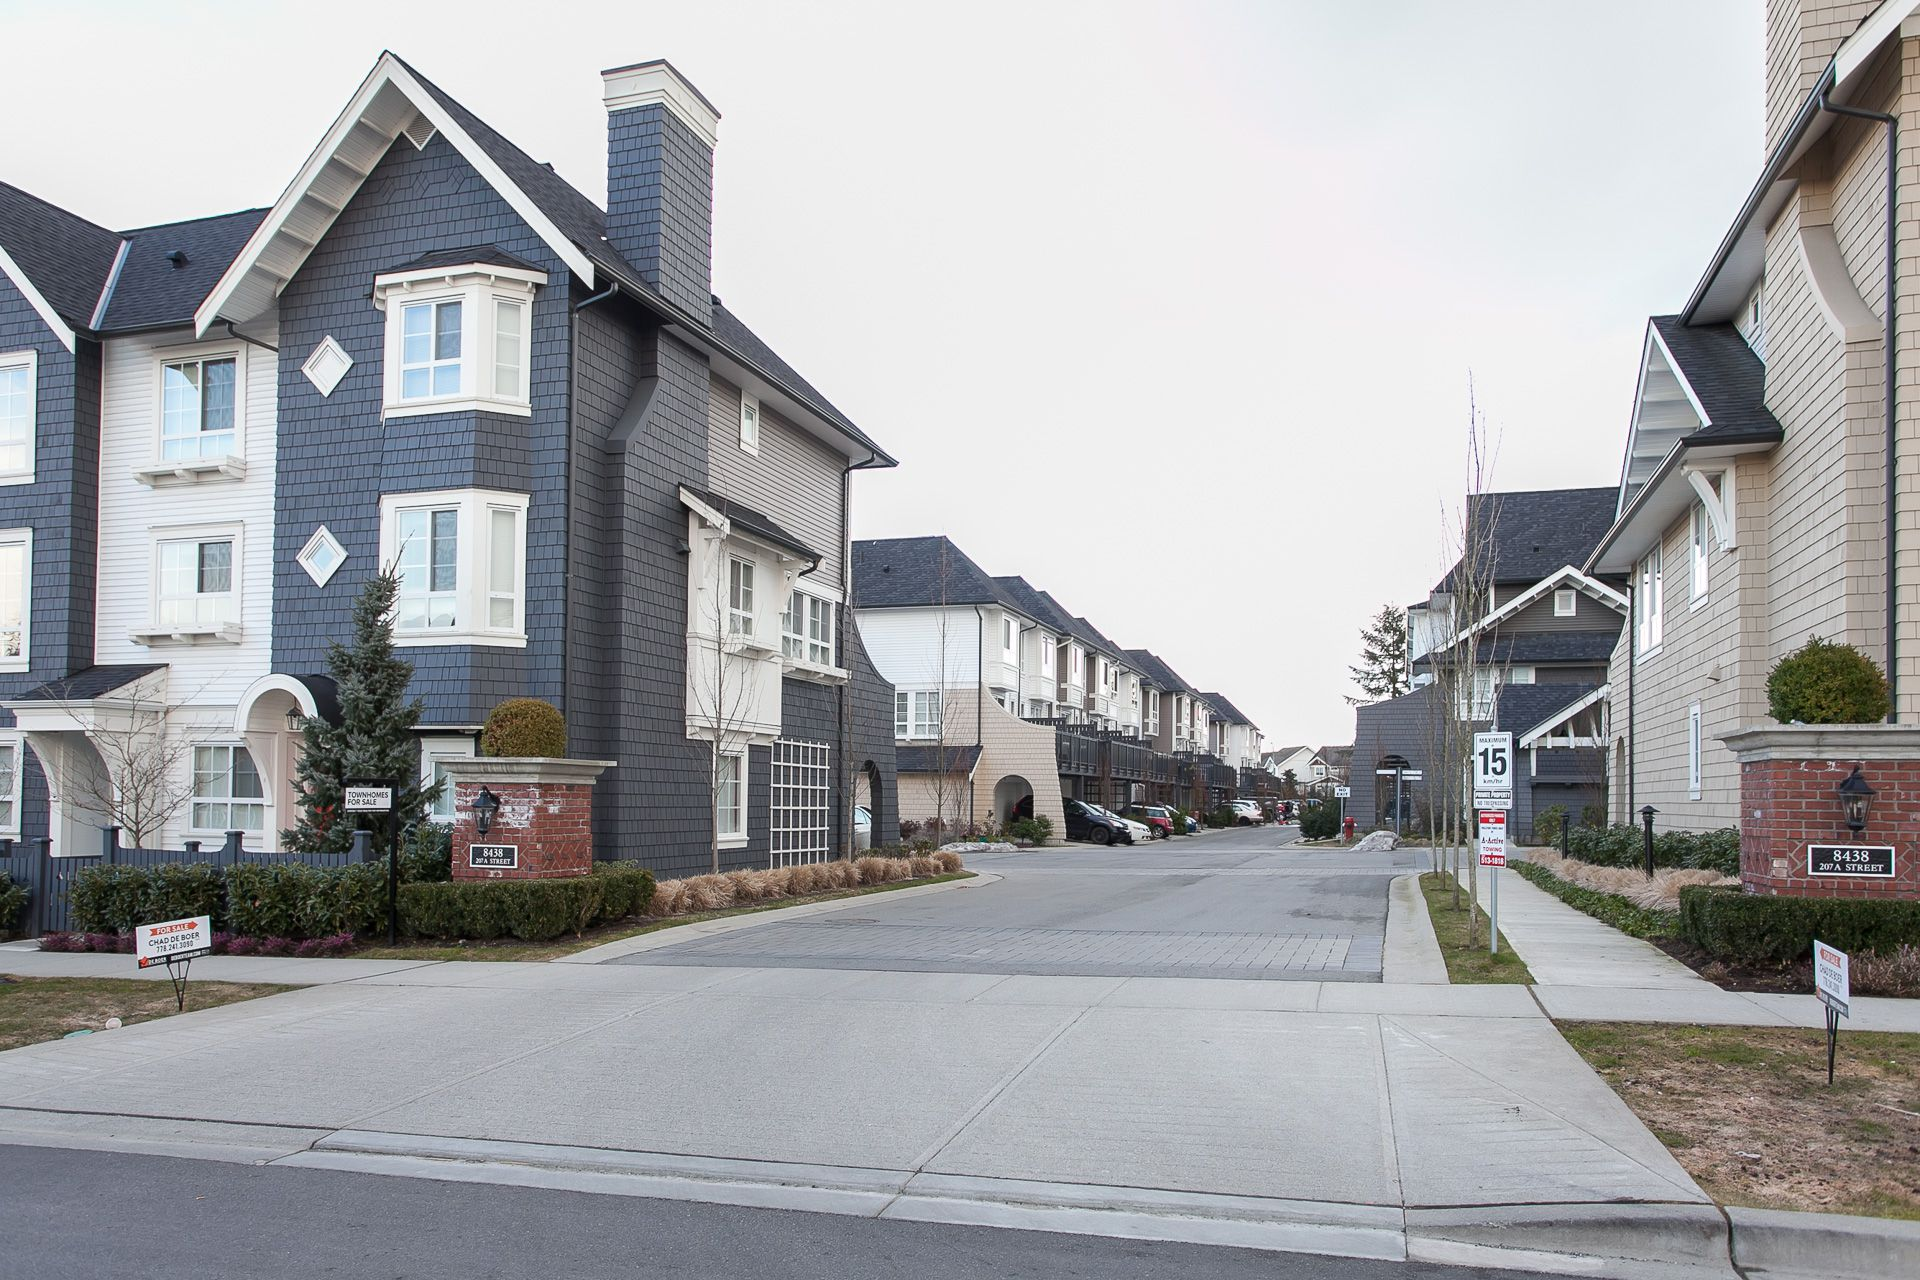 Main Photo: 74 8438 207a Street in Langley: Willoughby Heights Townhouse for sale : MLS®# r2141041